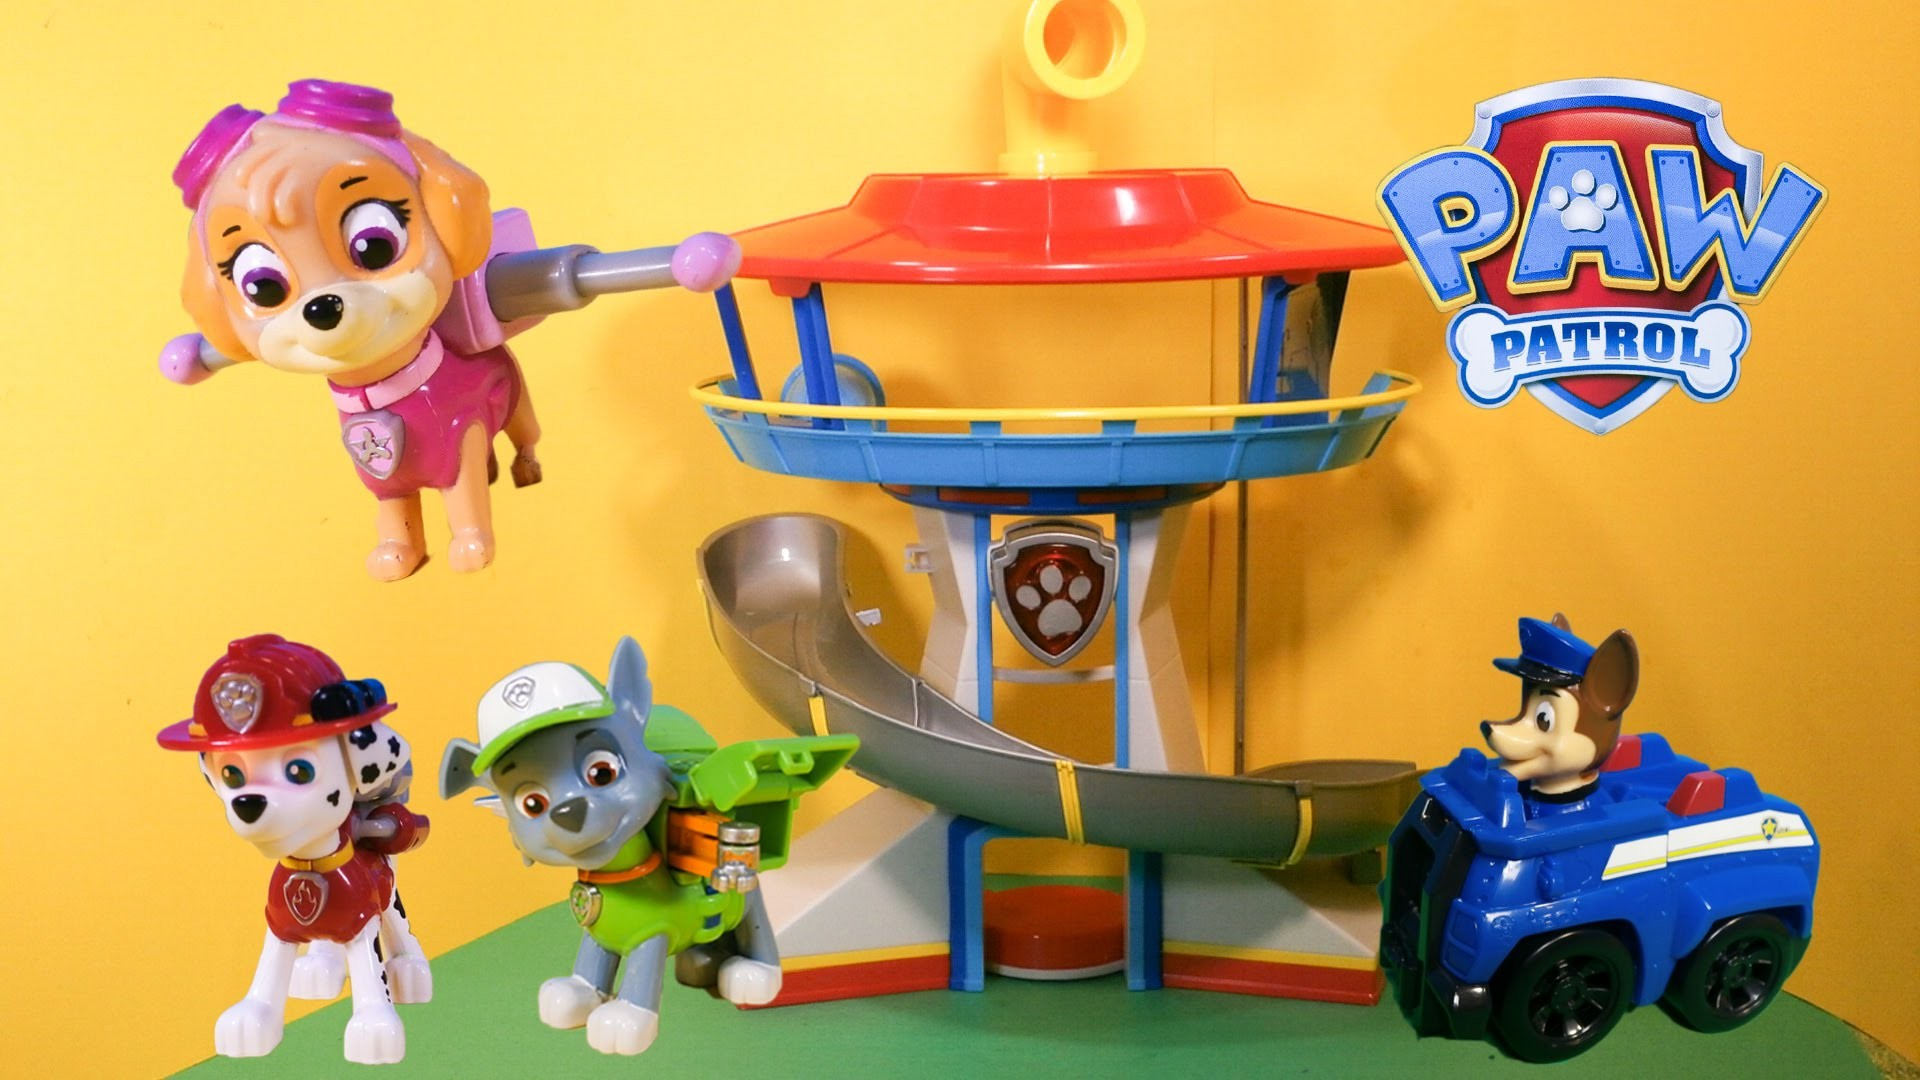 Paw Patrol Background 183 ① Download Free Wallpapers For